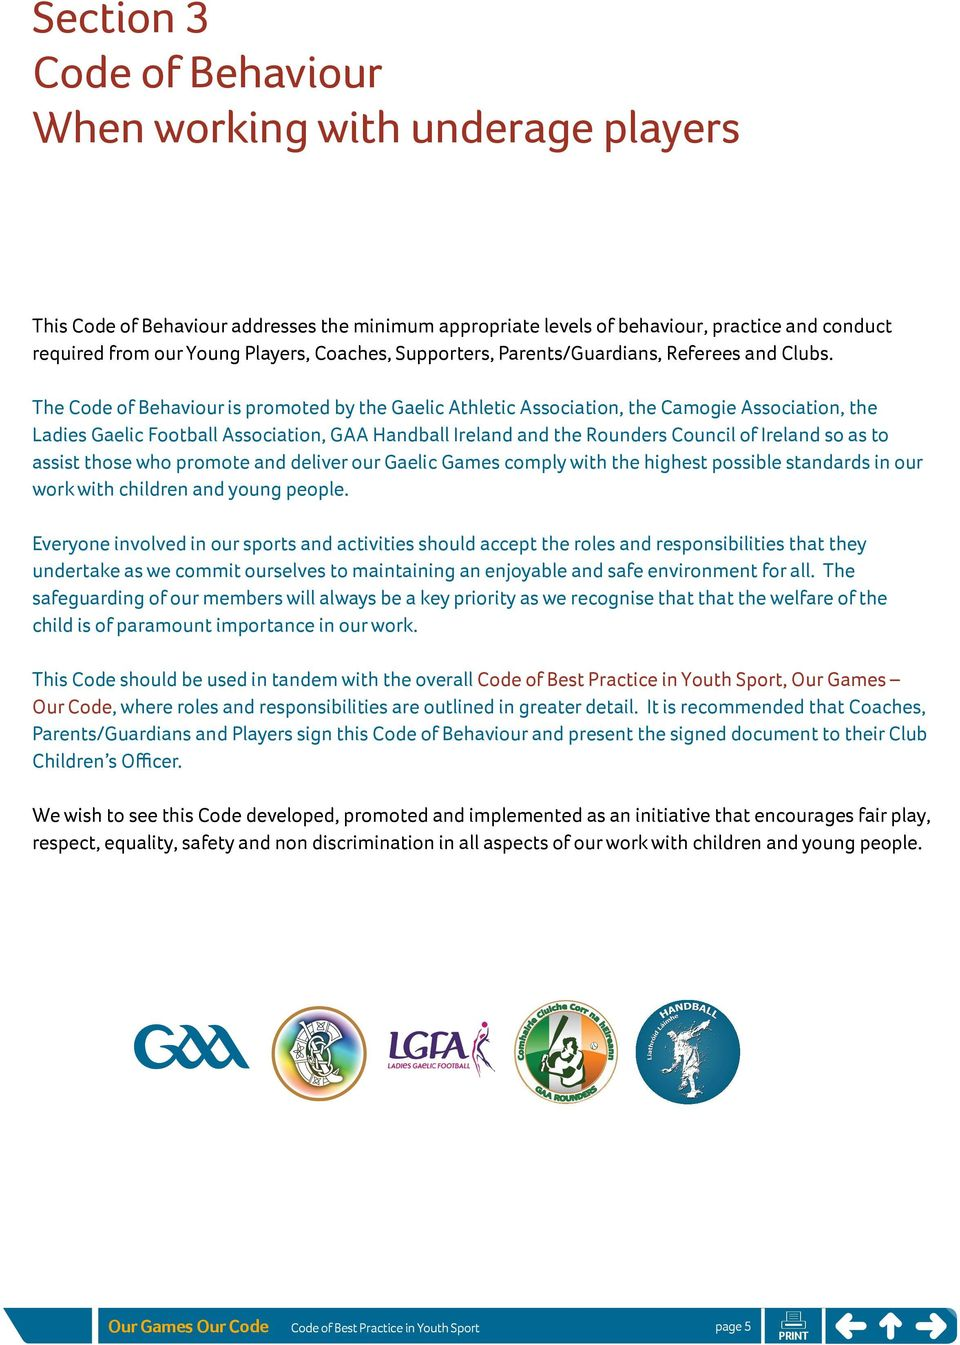 The Code of Behaviour is promoted by the Gaelic Athletic Association, the Camogie Association, the Ladies Gaelic Football Association, GAA Handball Ireland and the Rounders Council of Ireland so as